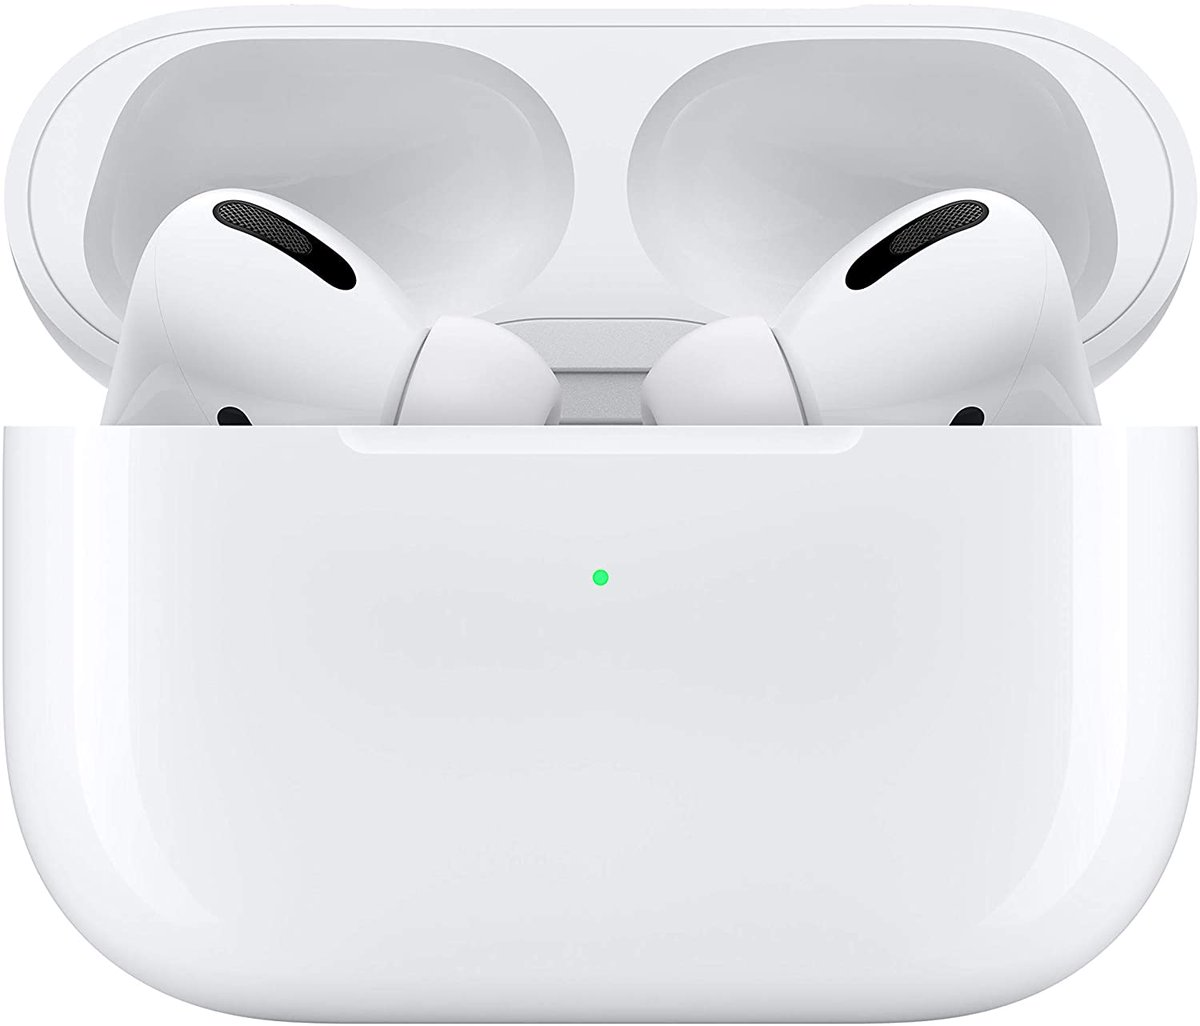 NEW Apple Airpods Pros for $219!!!  -Under retail, retail $250!!!  https://t.co/CWCWdBvvNa https://t.co/Wlk7SL4fNY